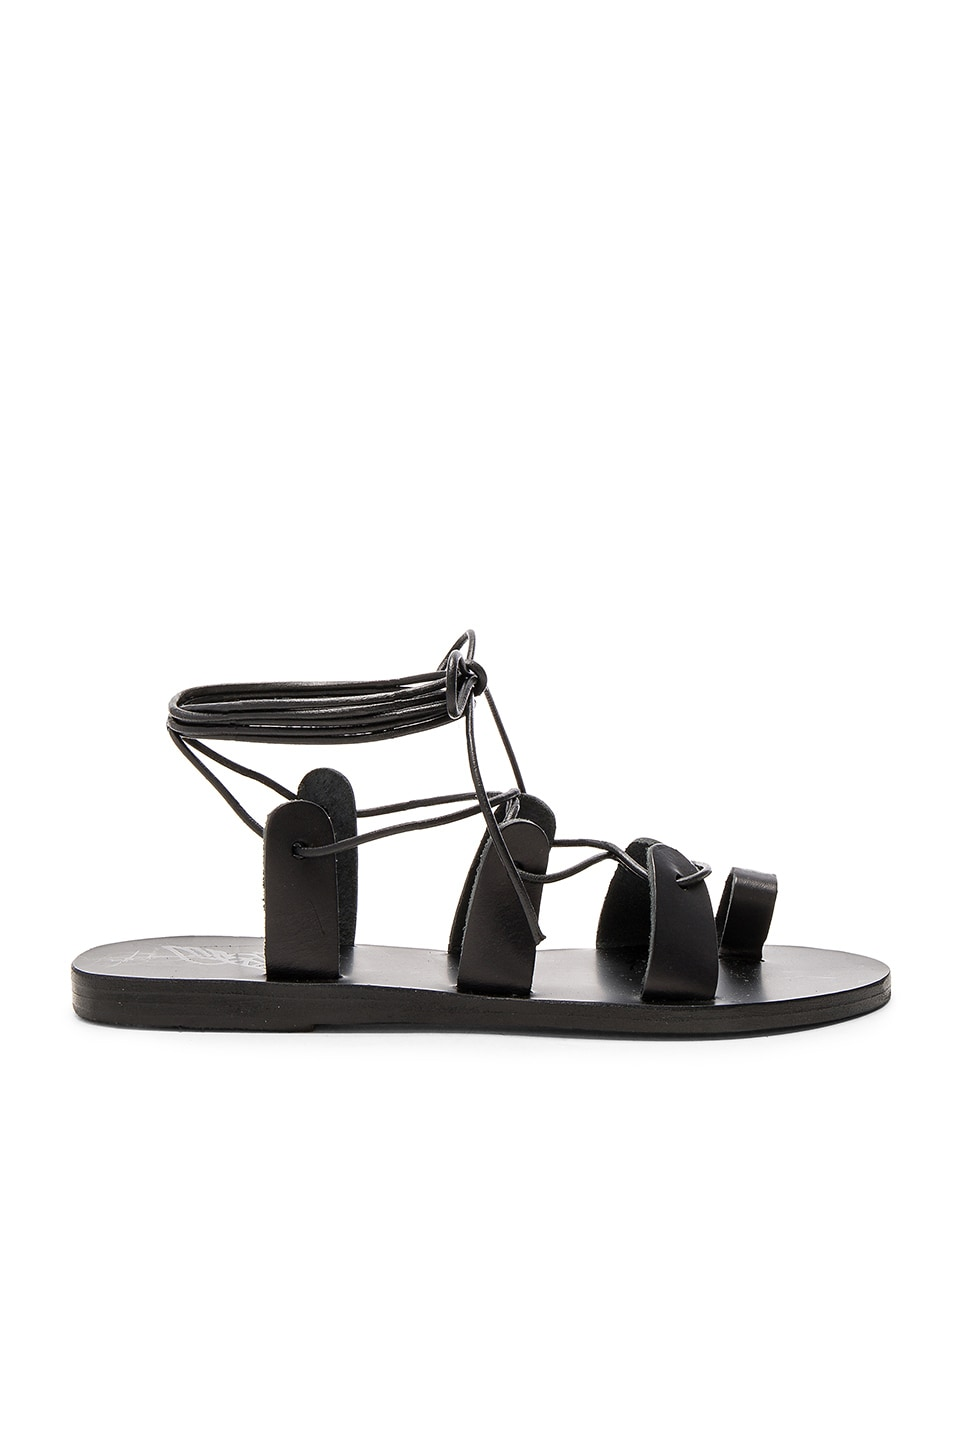 Alcyone Sandal by Ancient Greek Sandals